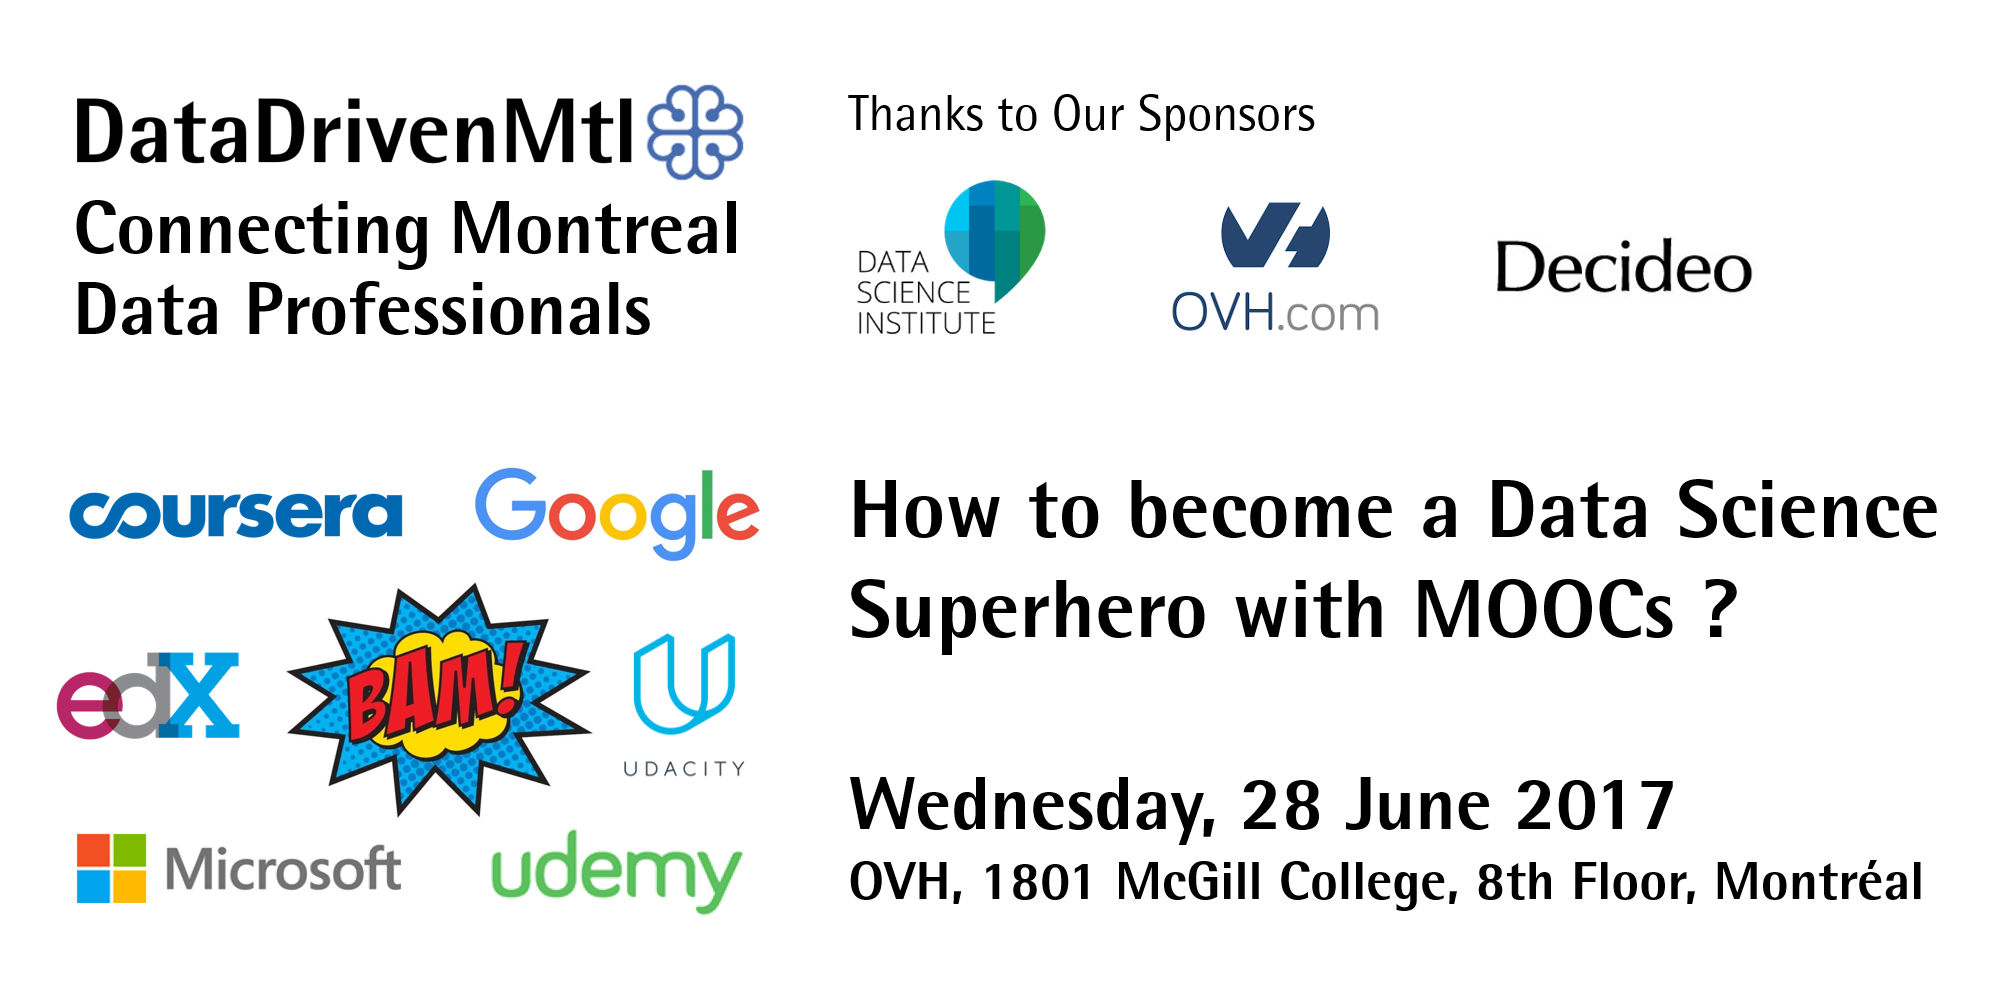 How to become a Data Science Superhero with M